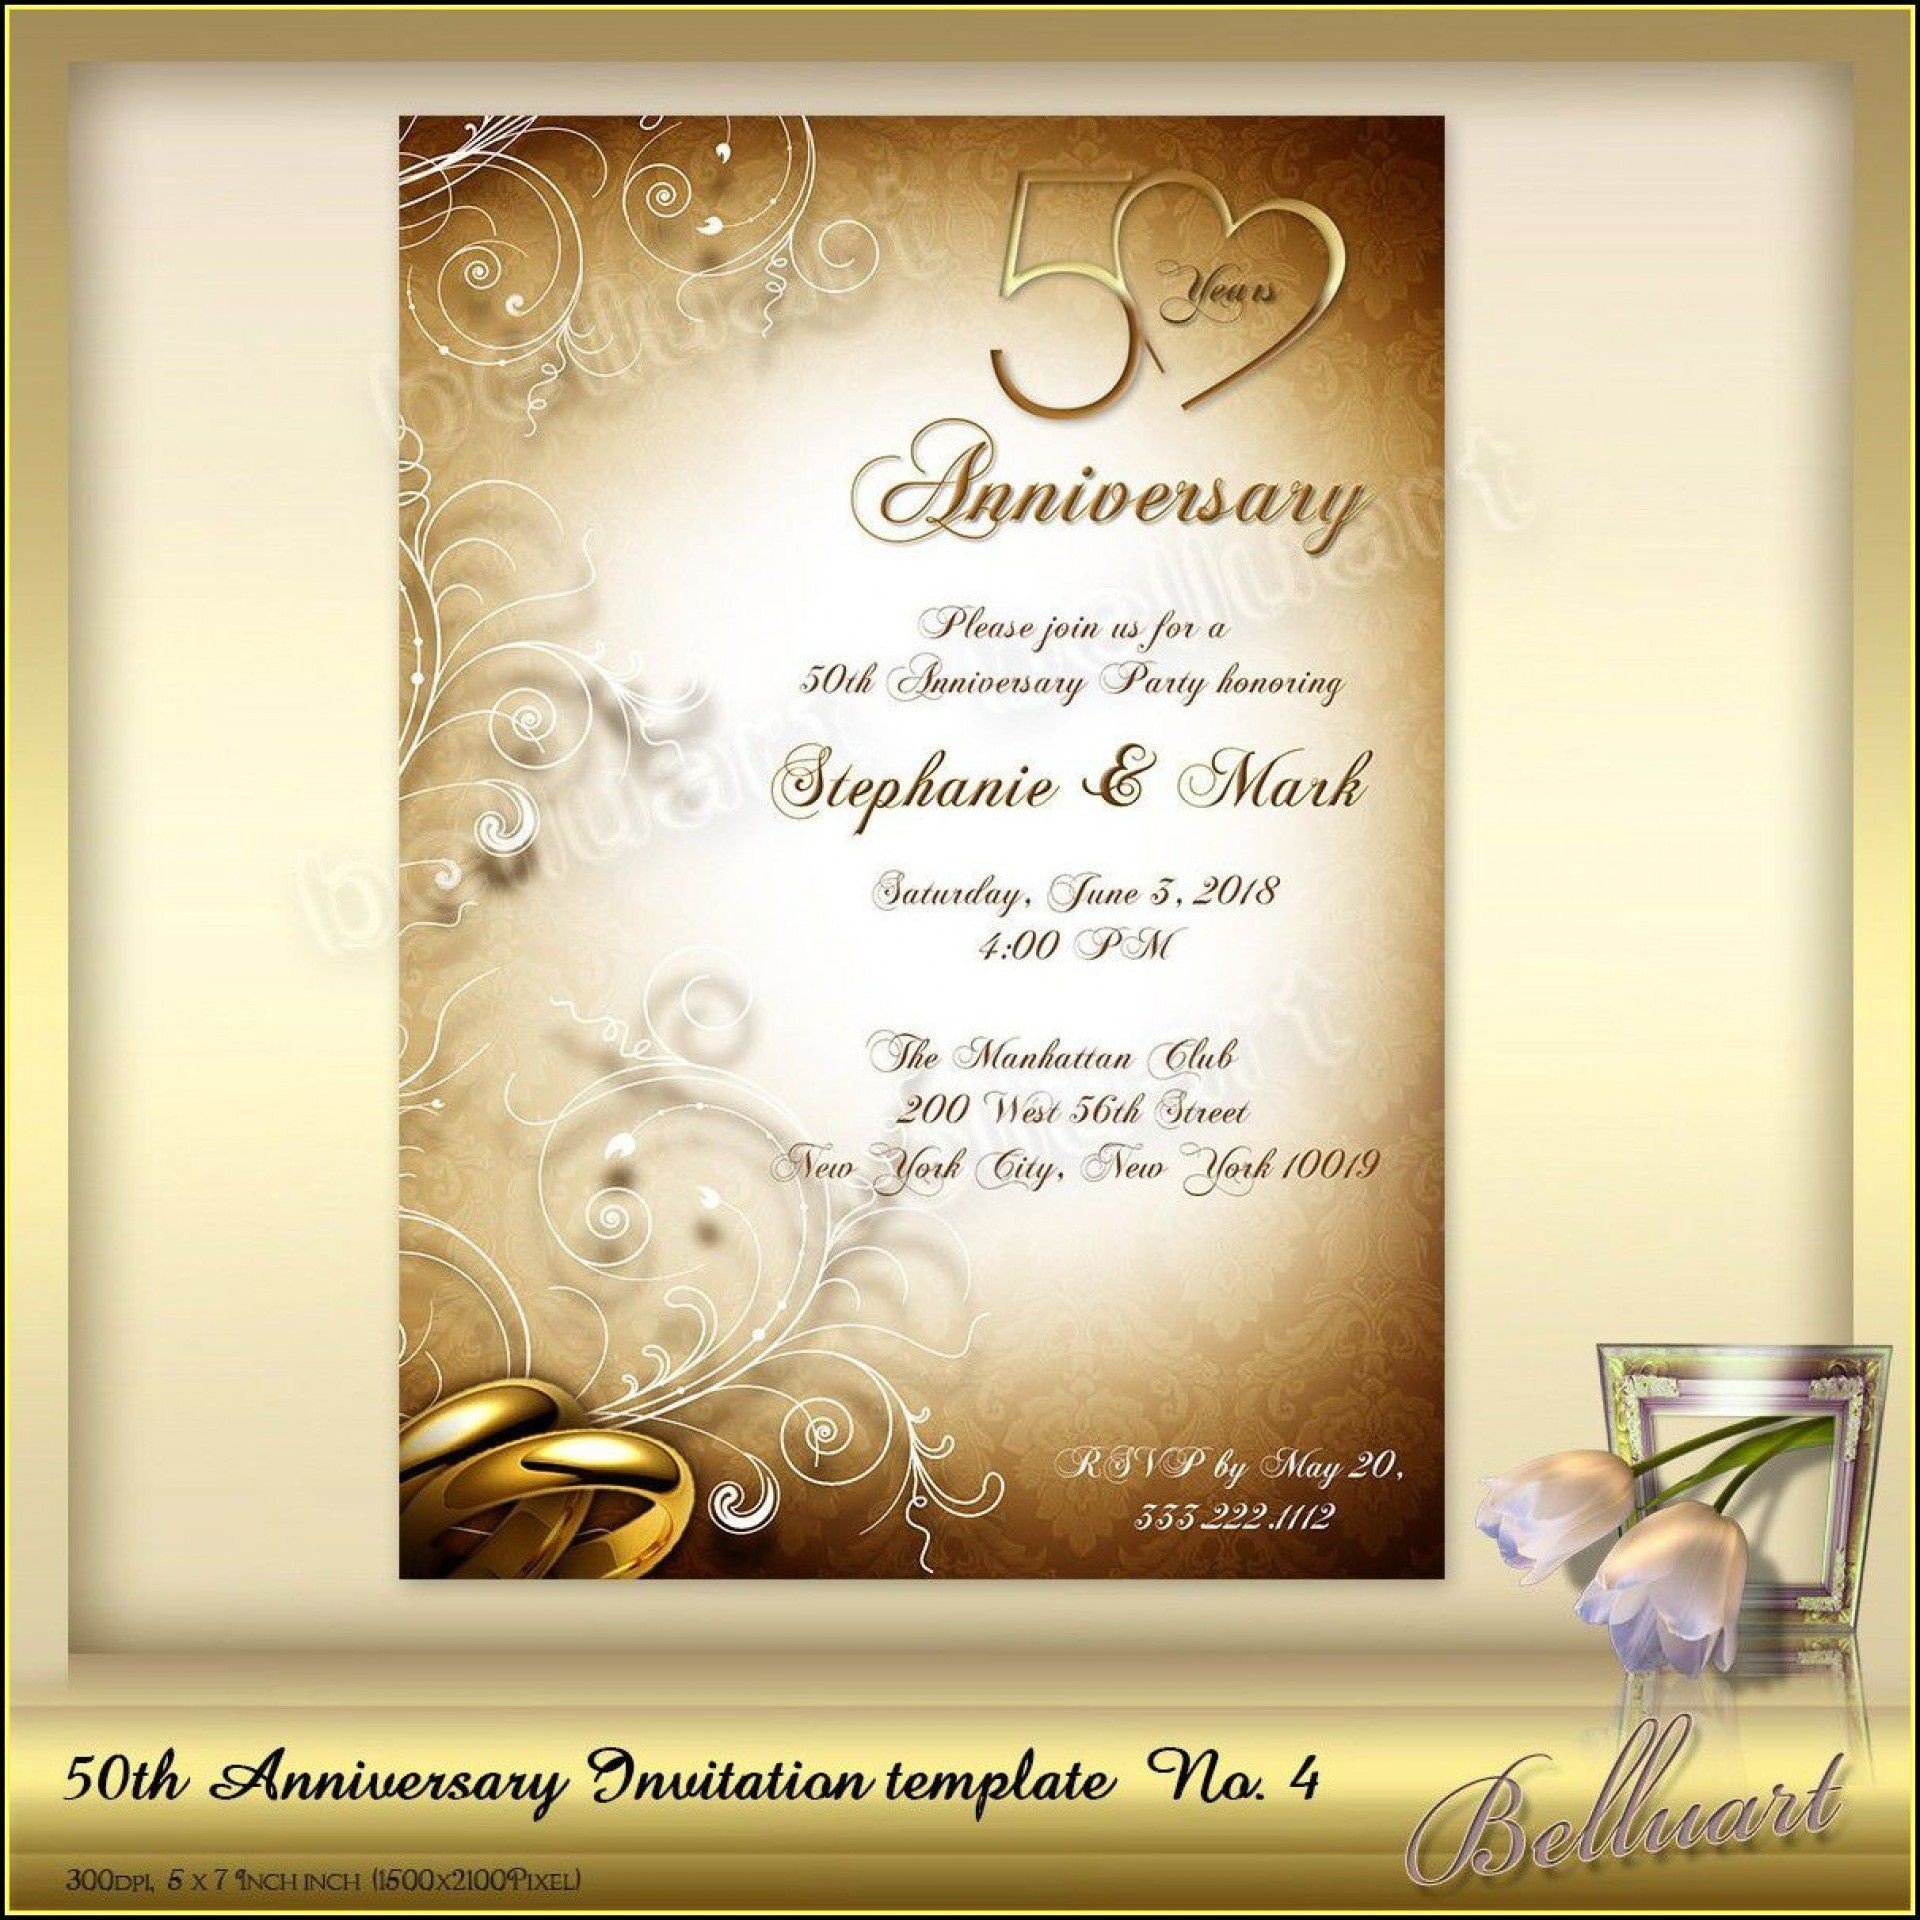 002 Top 50th Anniversary Invitation Template High Def  Templates Wedding Free Download Golden1920